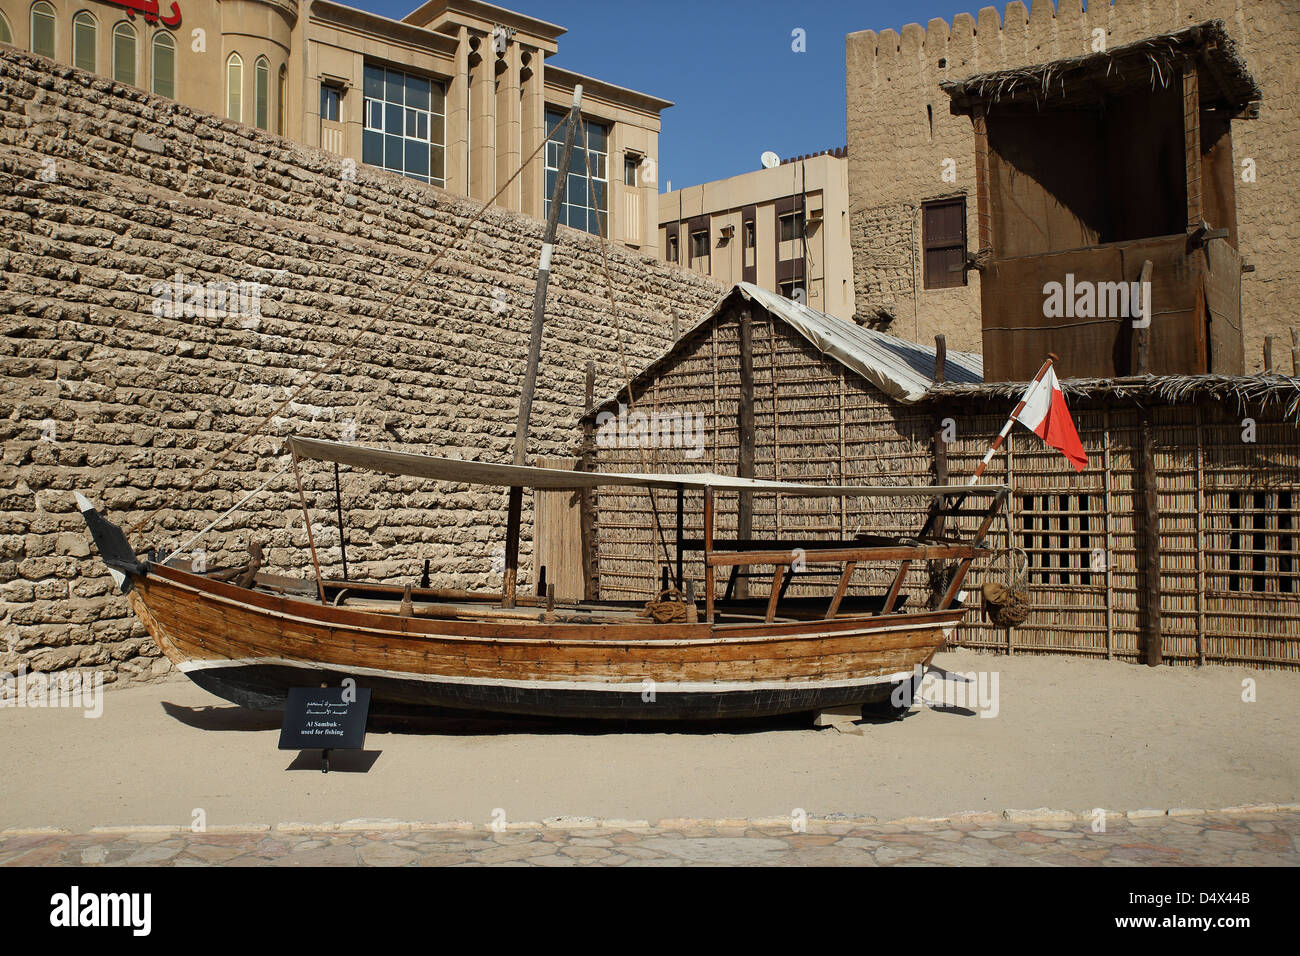 Traditional Arabic Dhow at Museum in Dubai - Stock Image